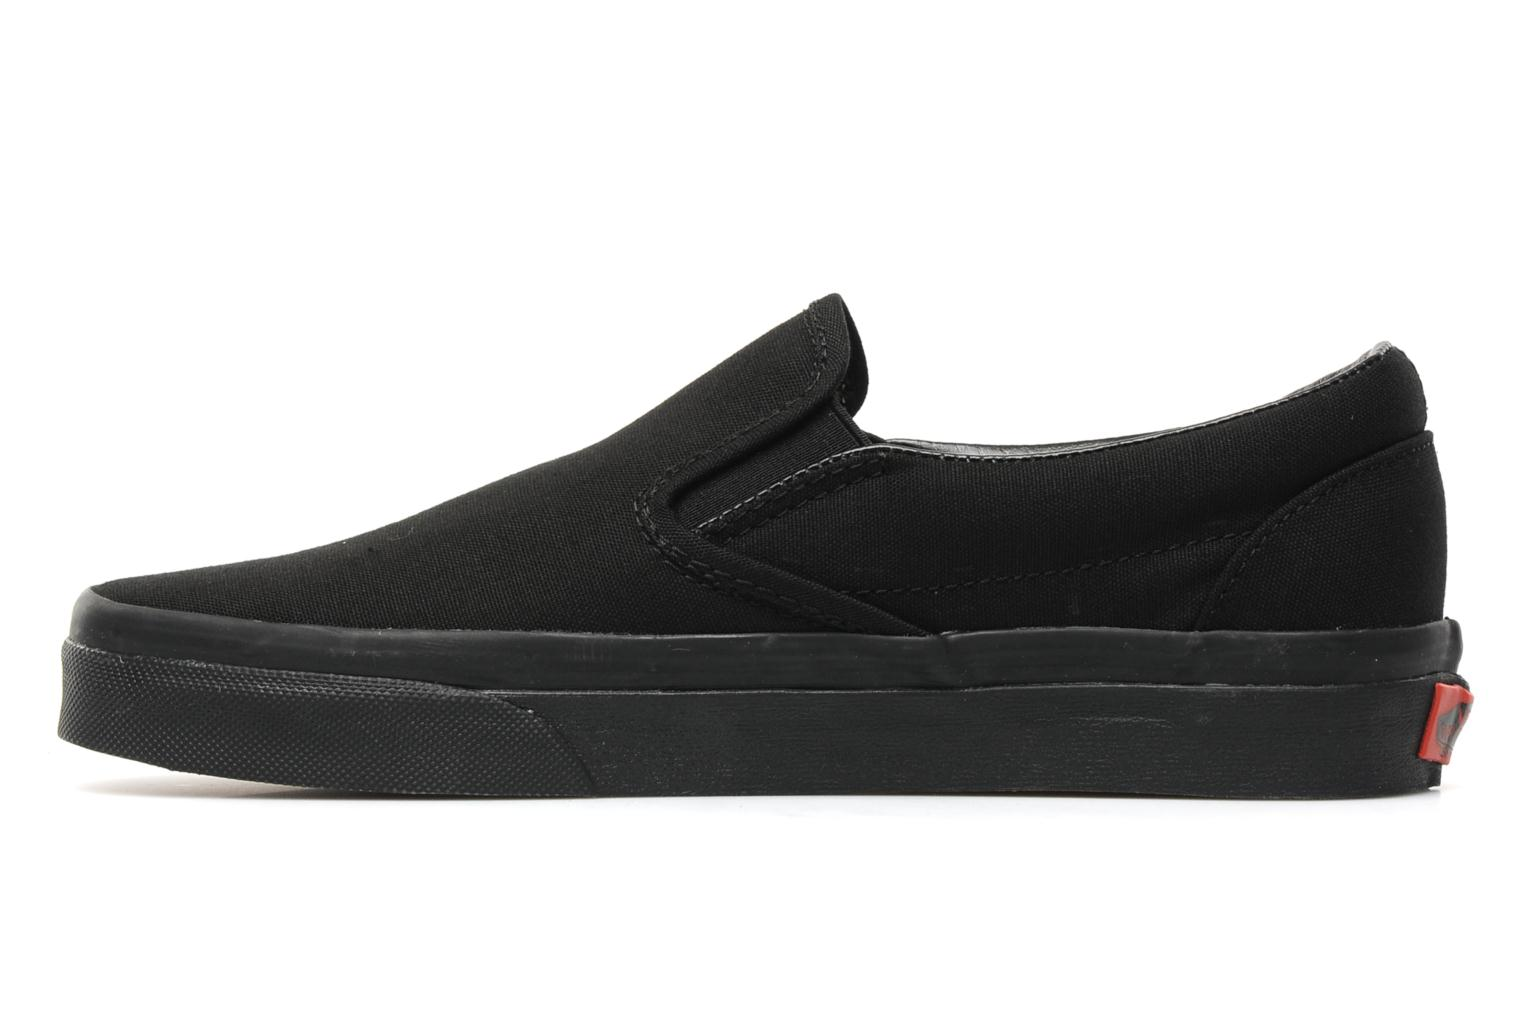 vans classic slip on w noir baskets chez sarenza 140514. Black Bedroom Furniture Sets. Home Design Ideas